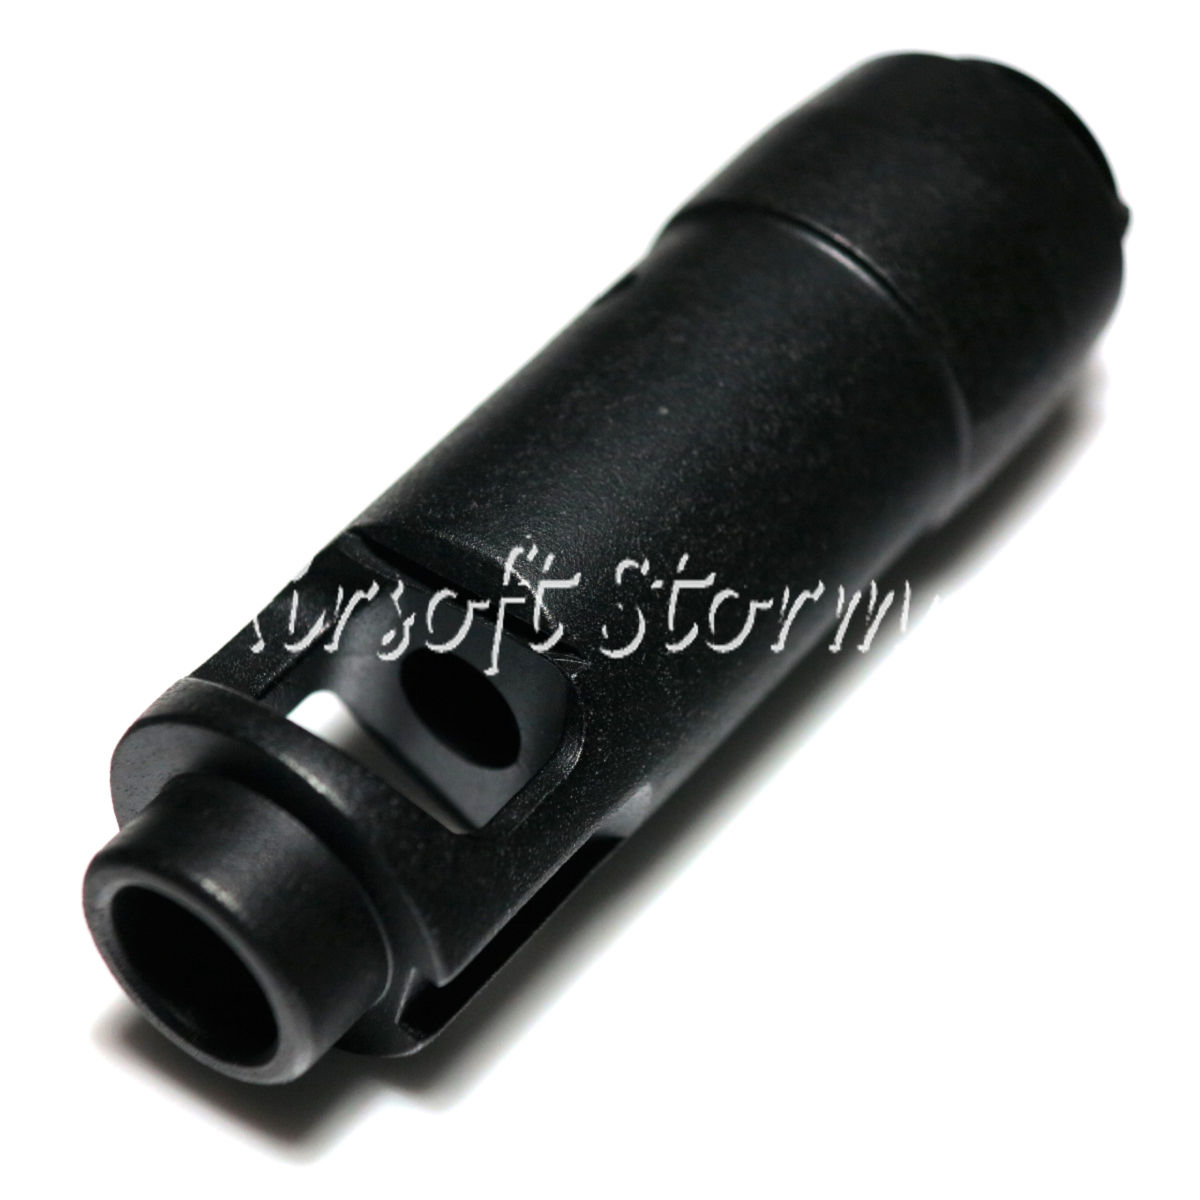 Shooting Gear APS AK74 Muzzle Flash Hider 14mm CCW Black